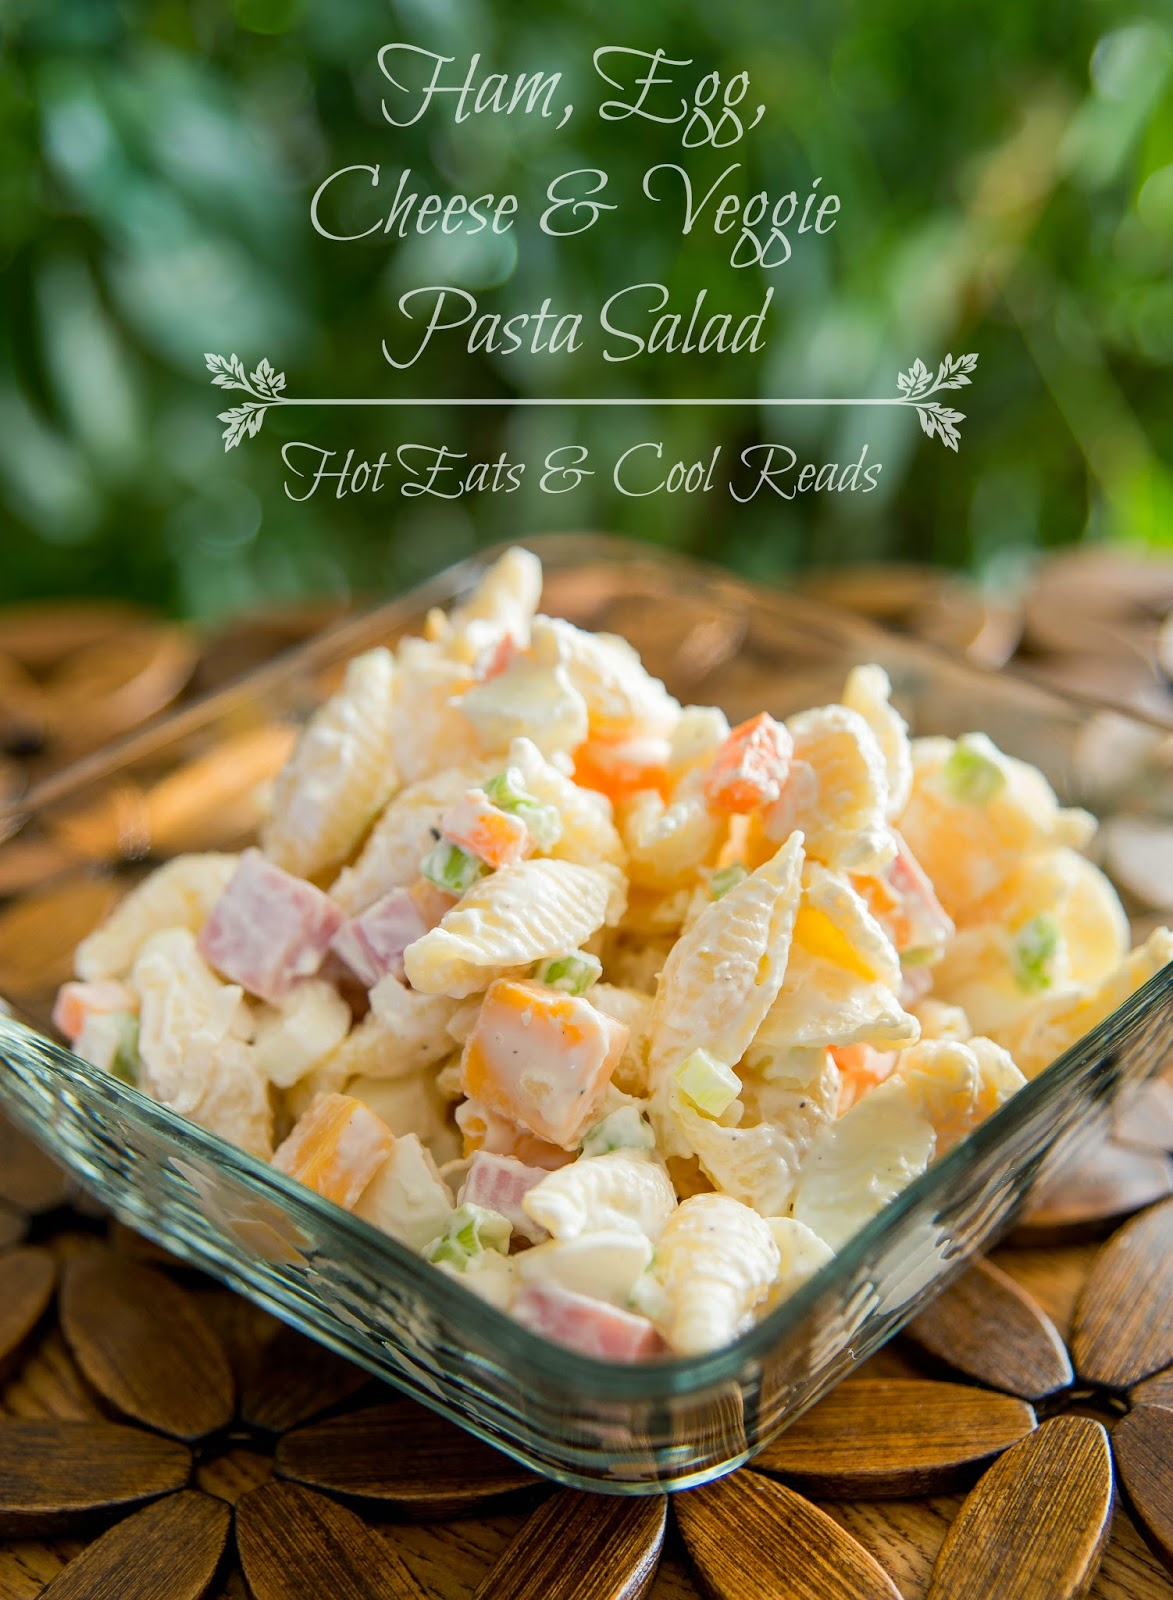 Perfect for any picnic, BBQ, potluck or event! This salad feeds a crowd and it's everyone's favorite! Ham, Egg, Cheese and Veggie Pasta Salad Recipe from Hot Eats and Cool Reads